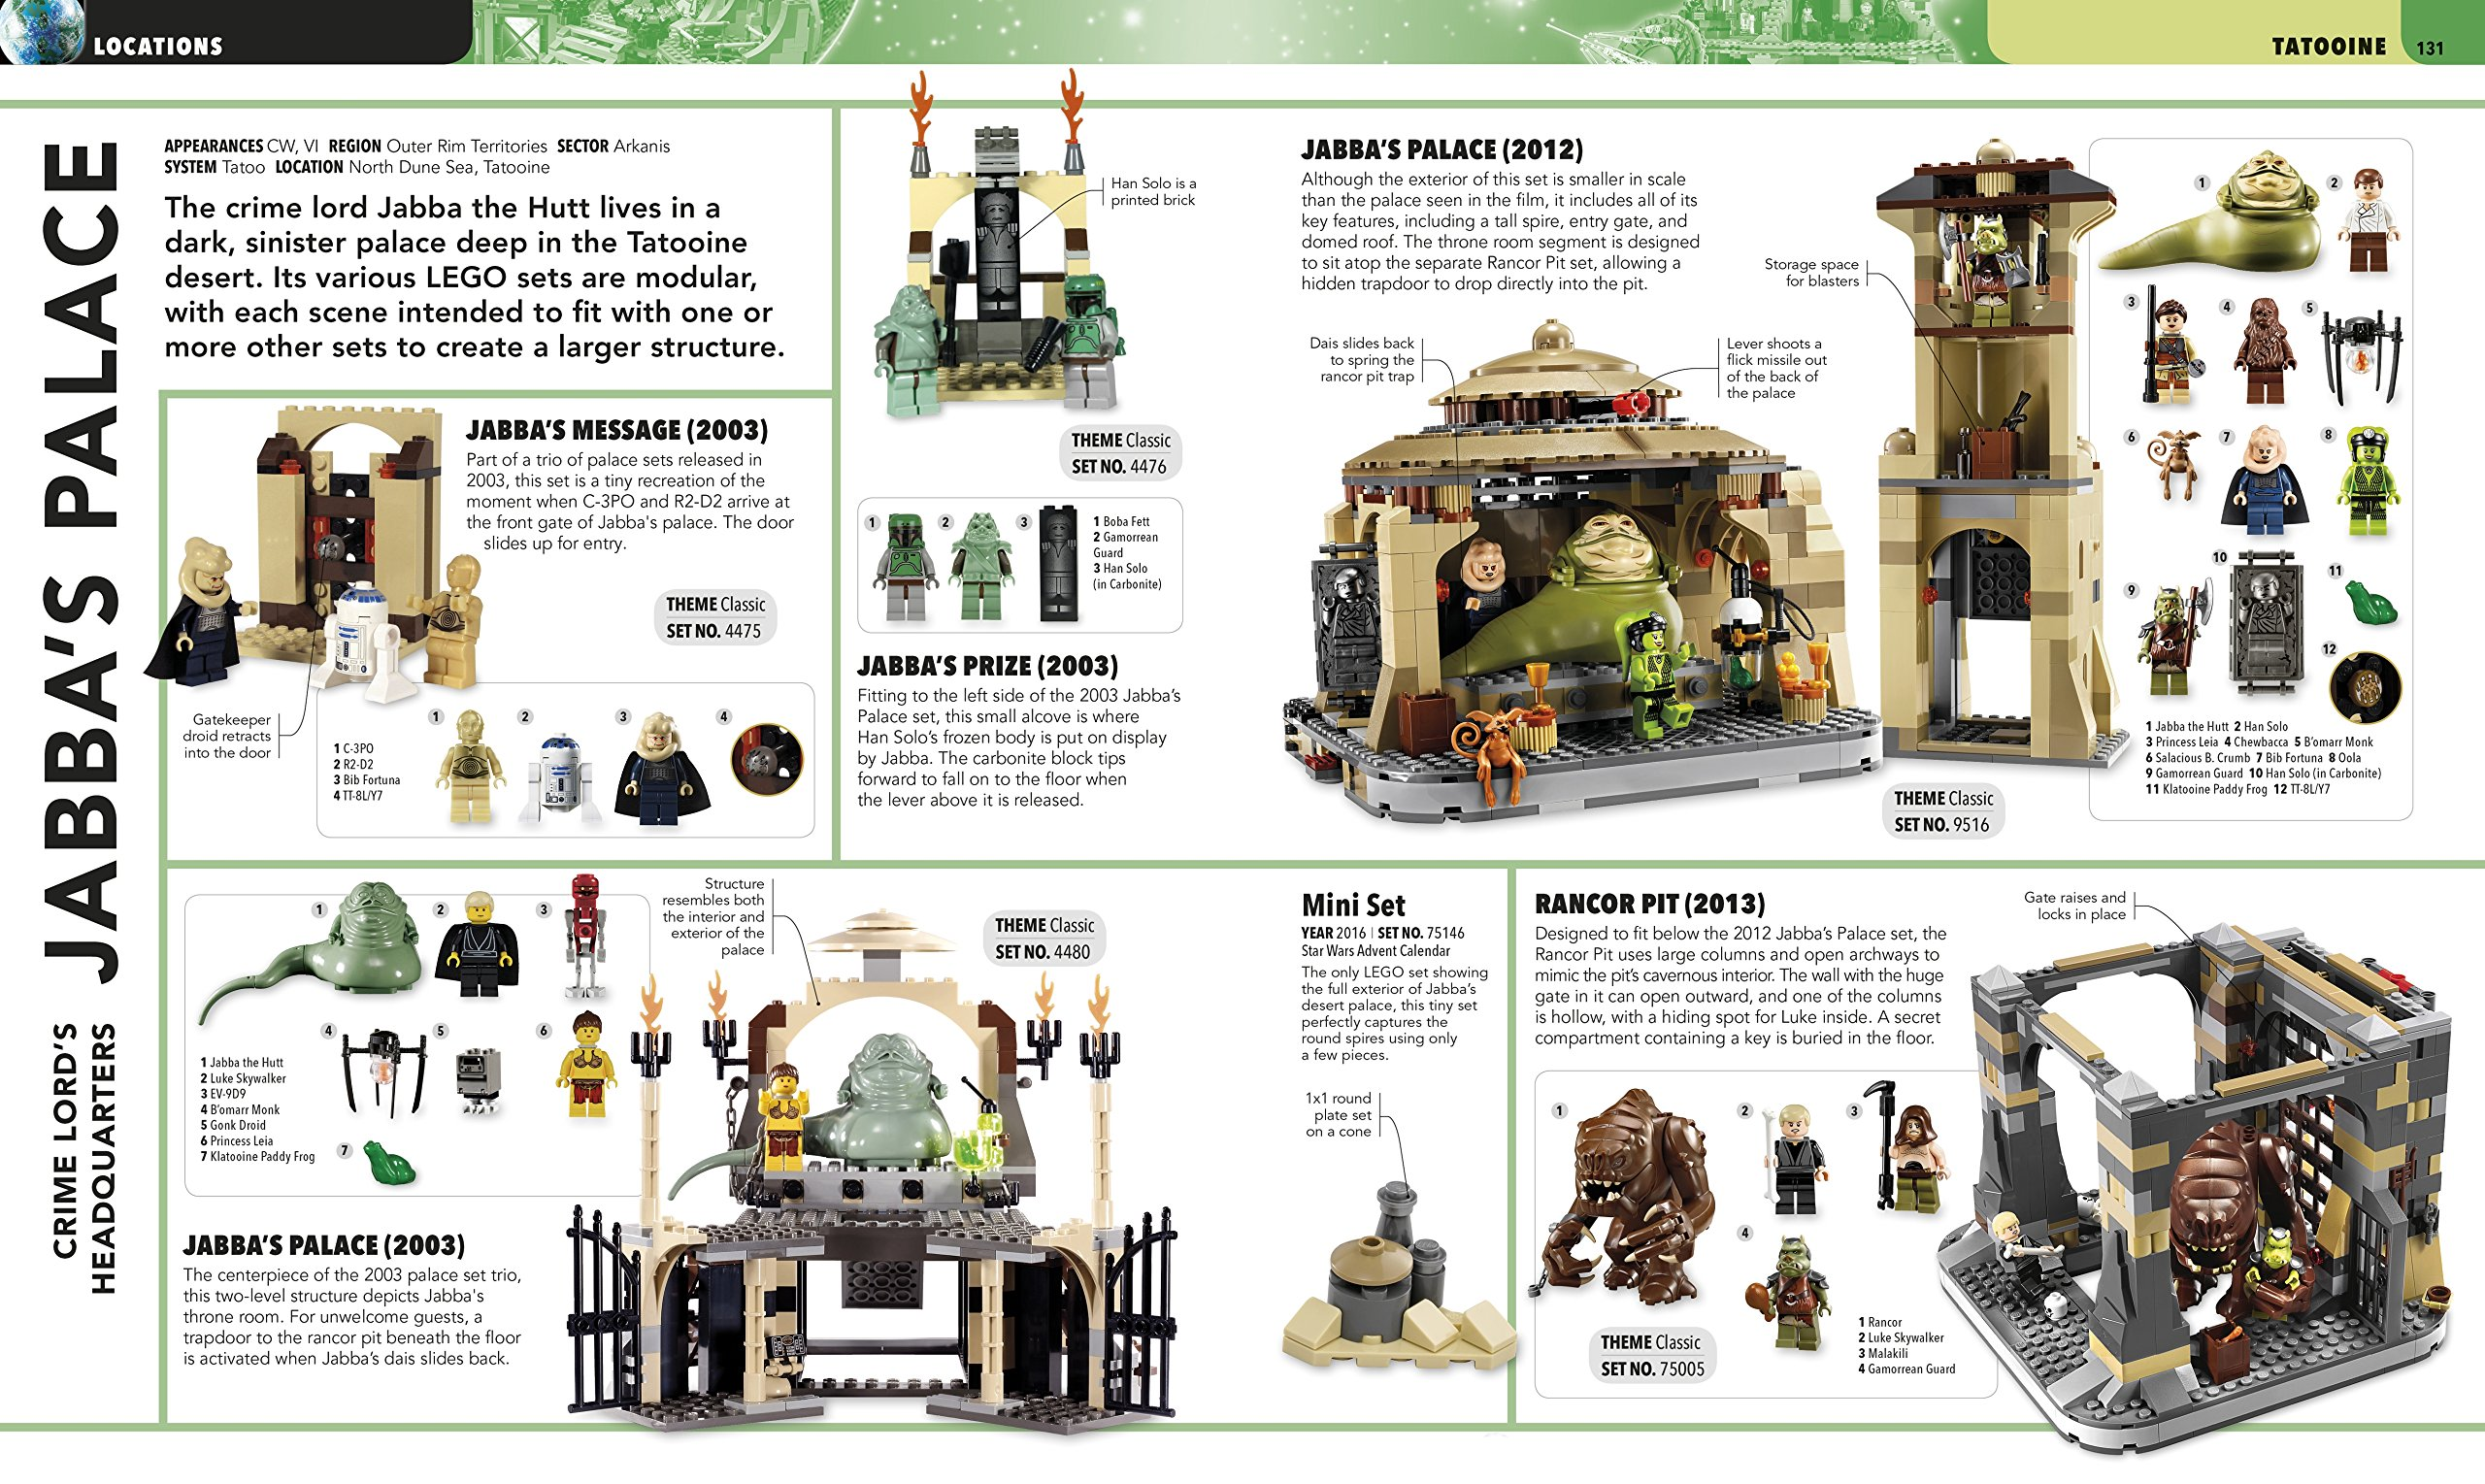 Ultimate Lego Star Wars Jabbas Palace The Brothers Brick The